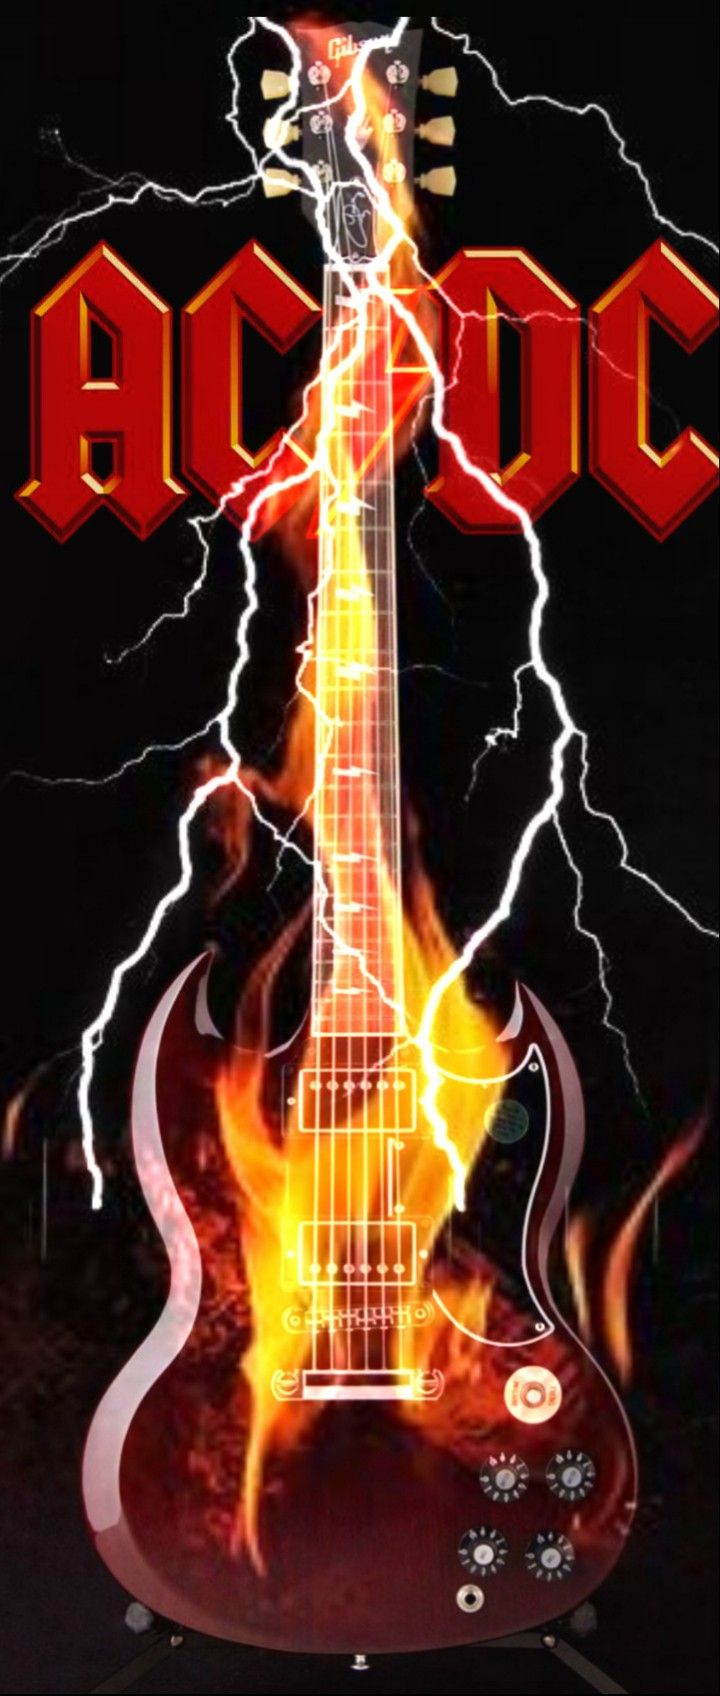 Fire Guitar Band Wallpapers Best Rock Bands Vintage Music Posters